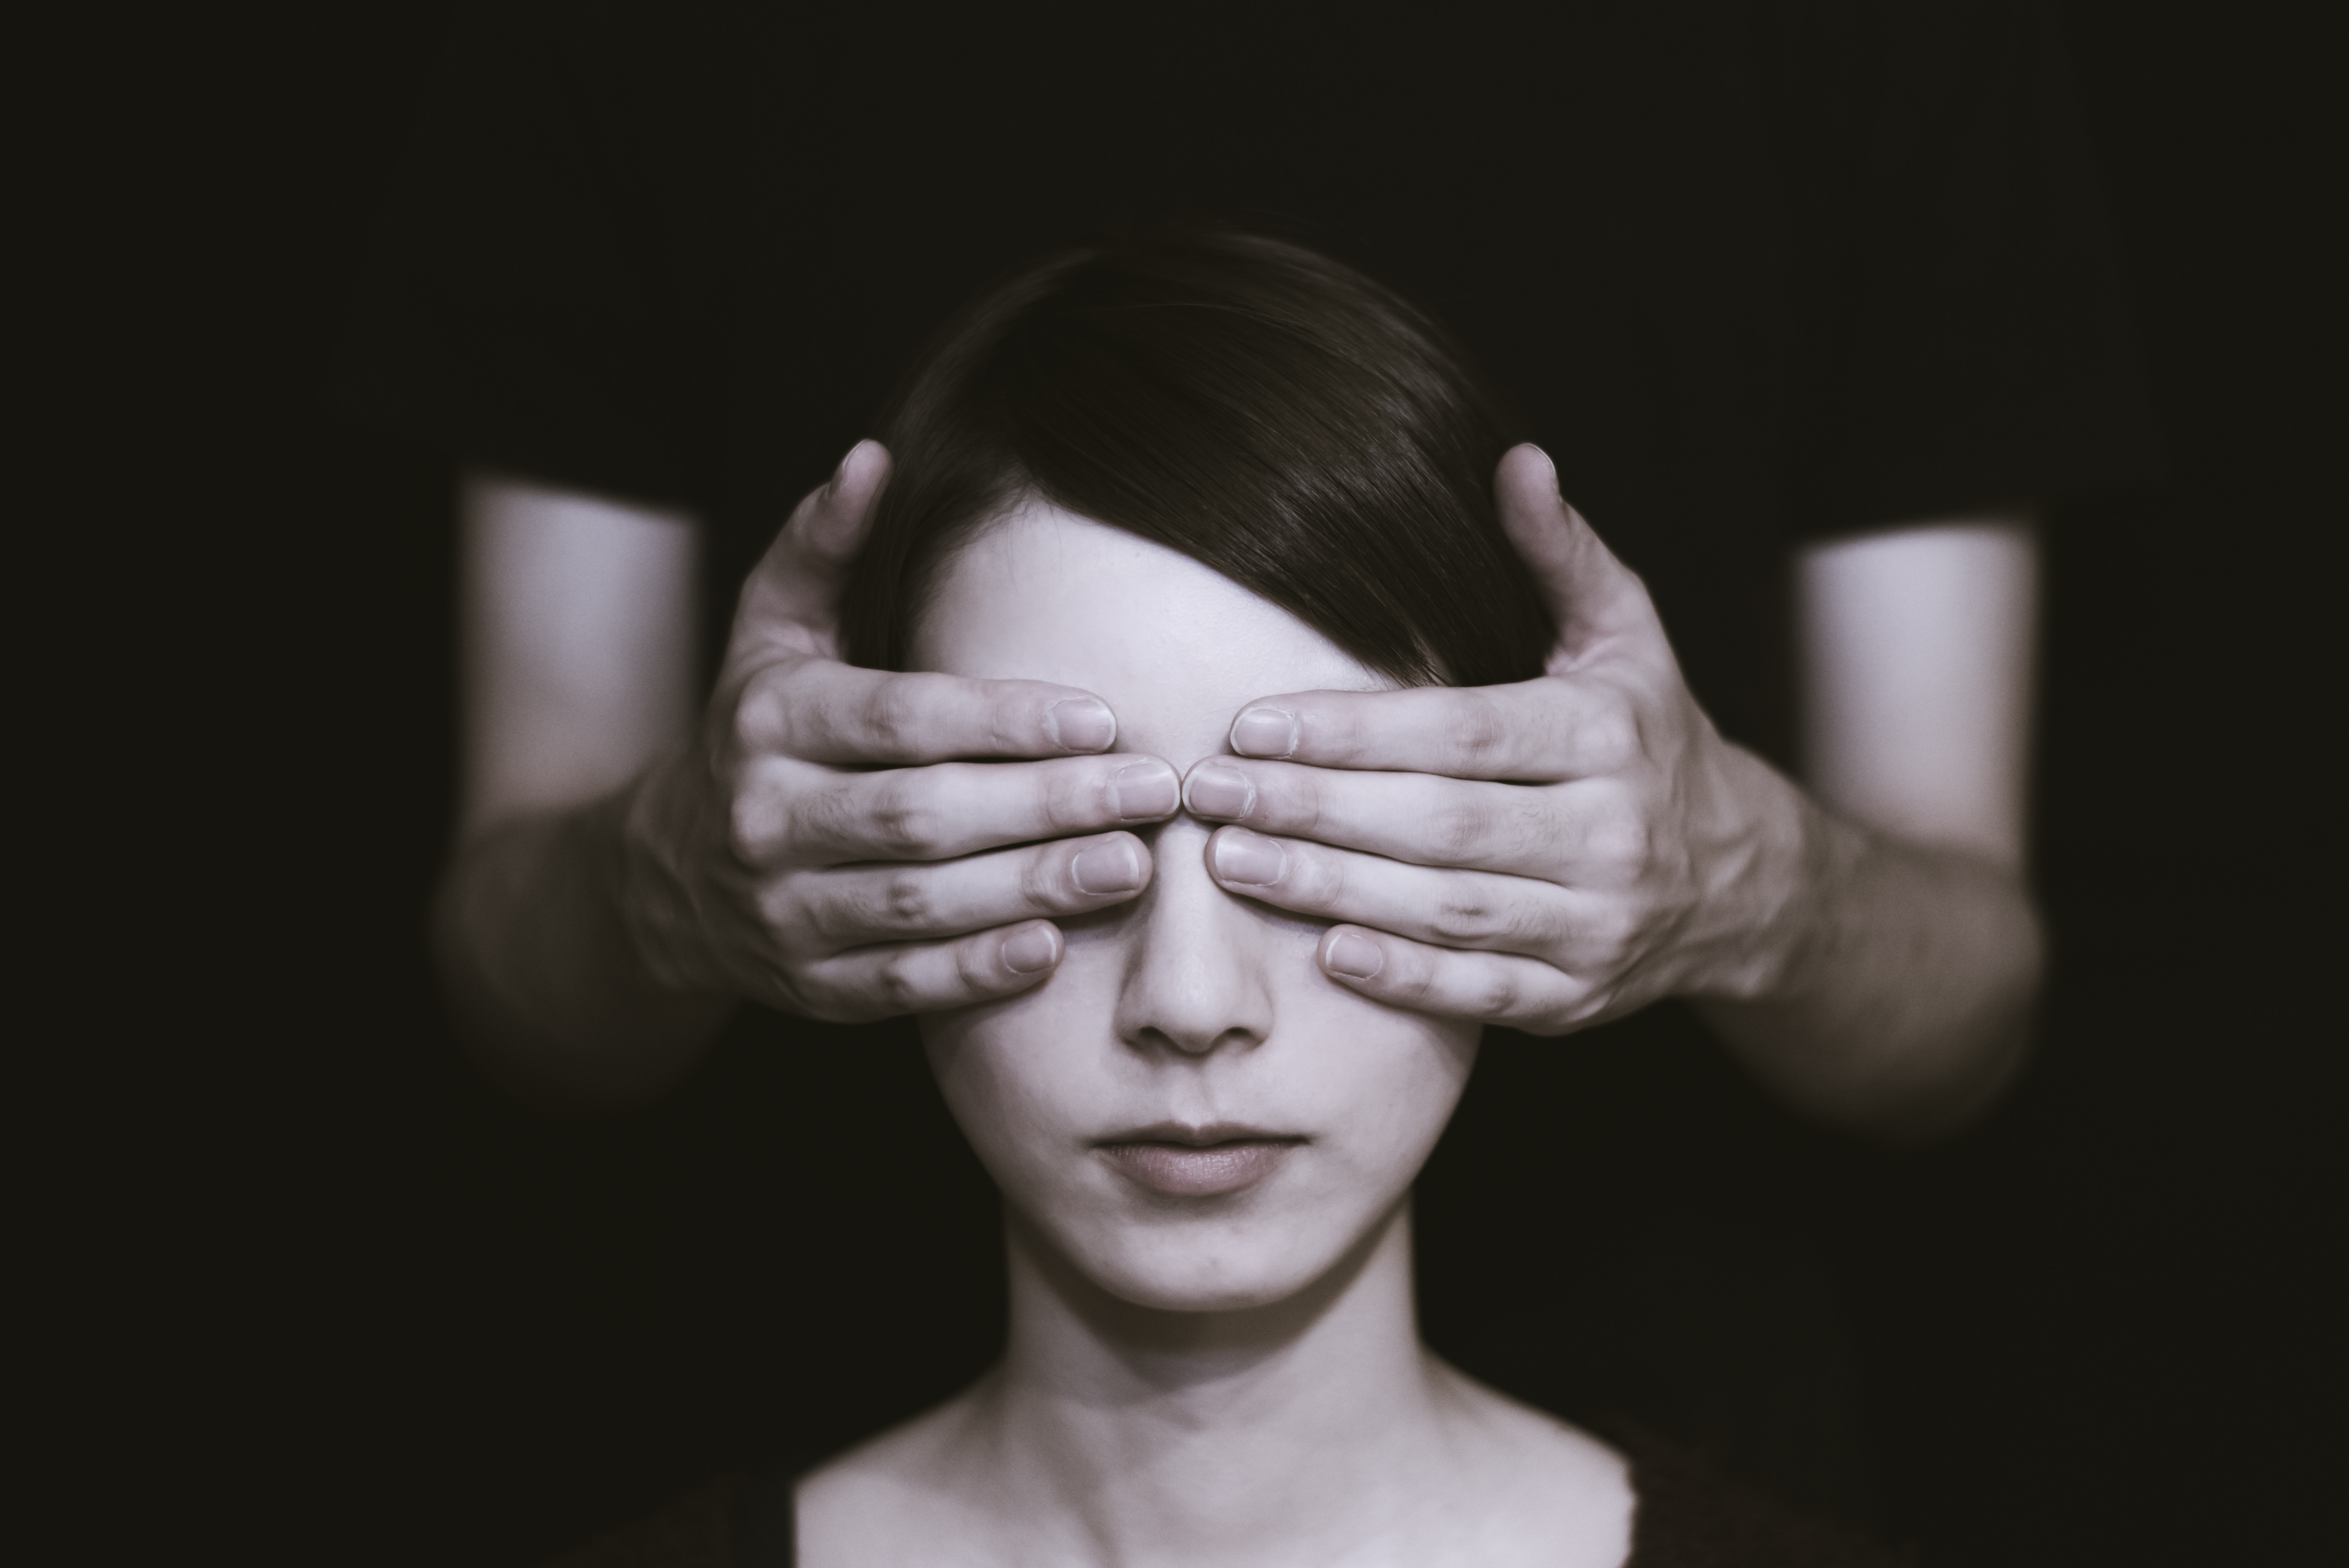 Woman with hands over her eyes